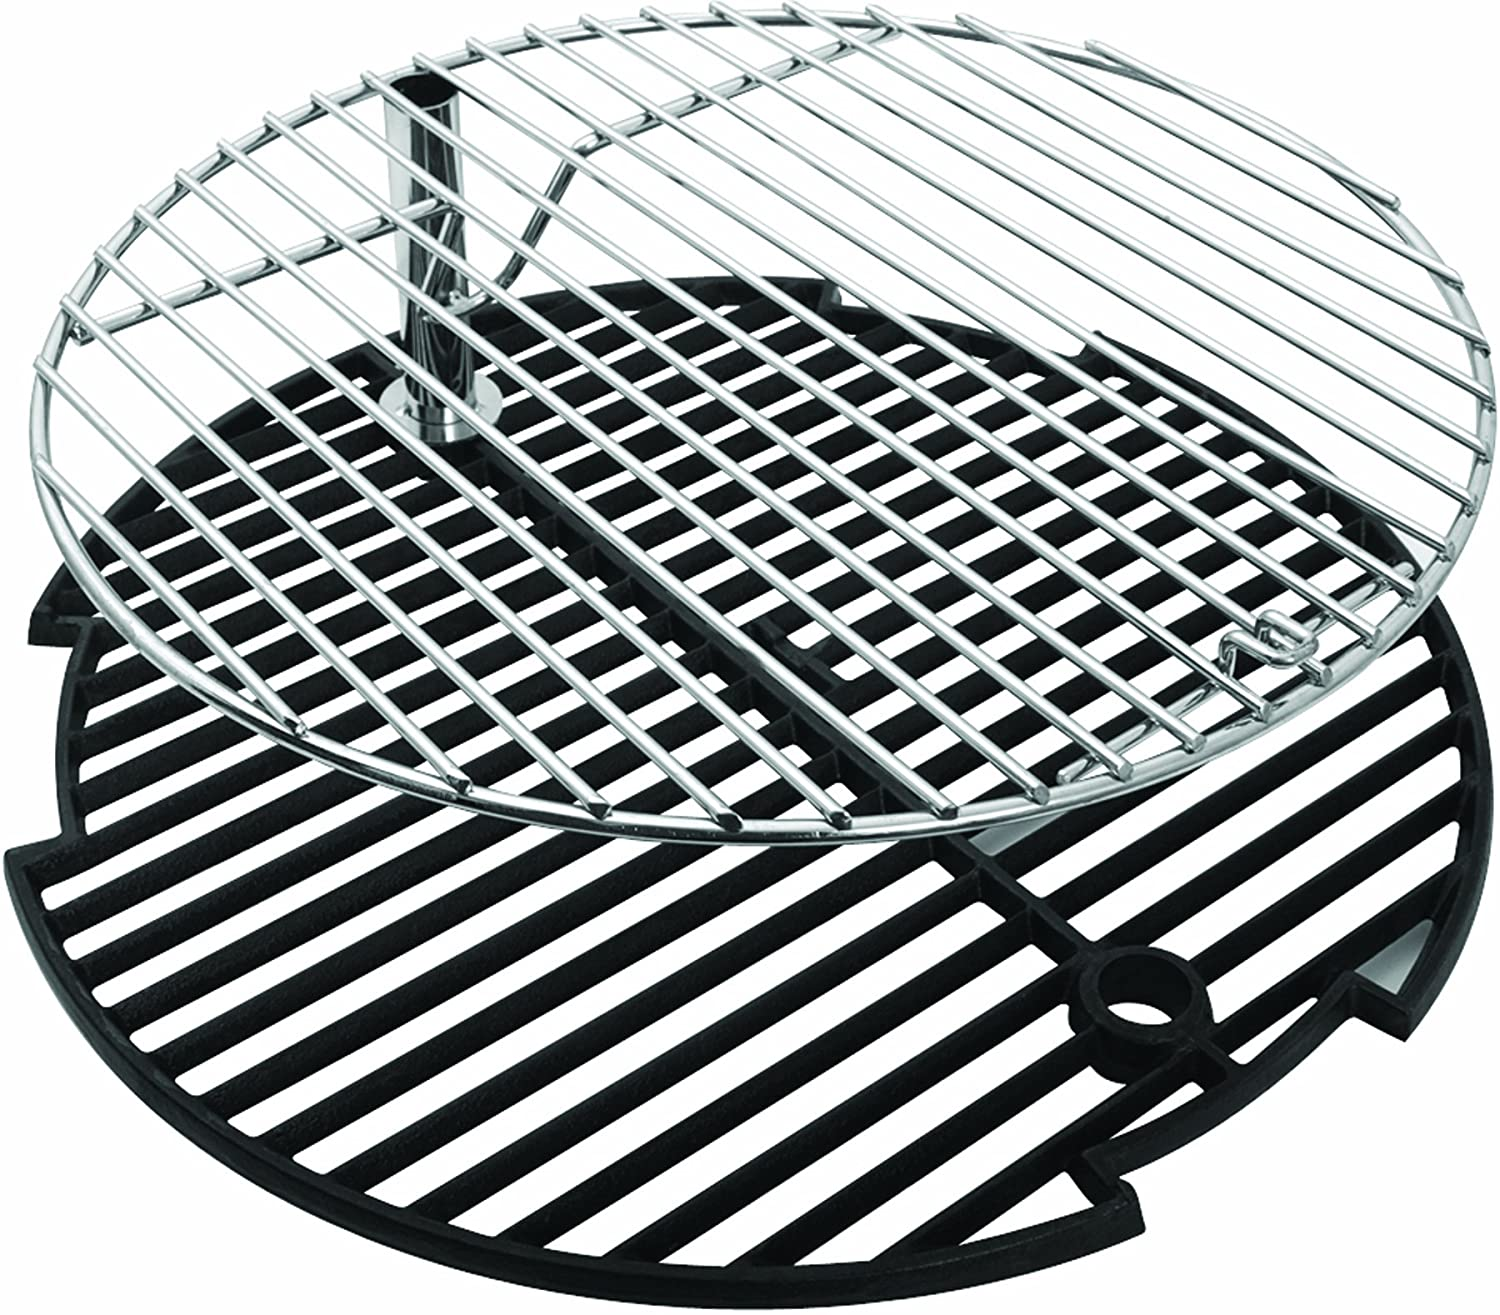 Broil King KA5545 Premium Cooking Grate Set KEG PREMIUM COOKING GRATE SET